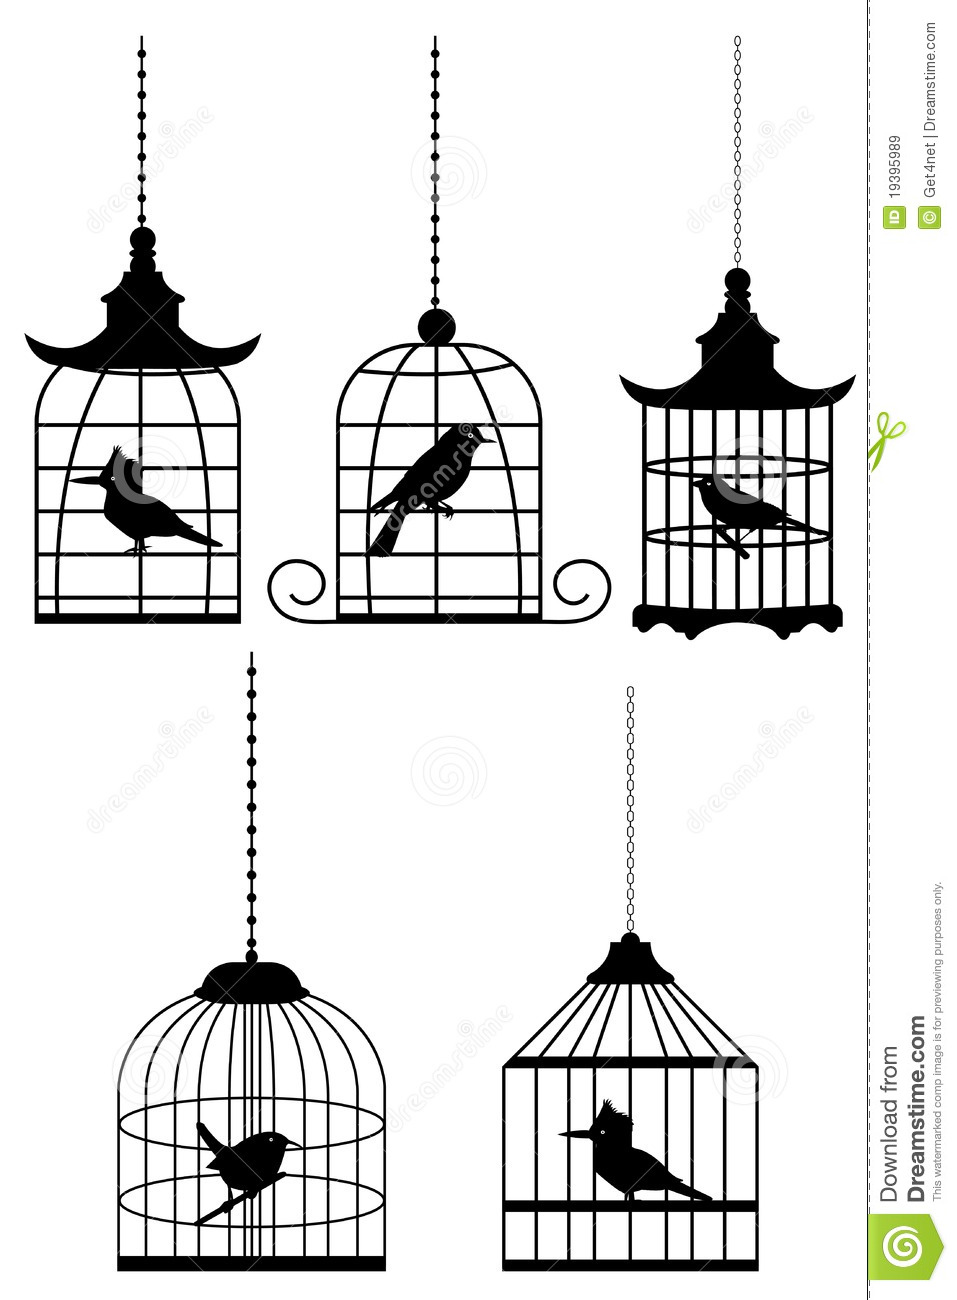 Bird In Cage Royalty Free Stock Images Image 19395989